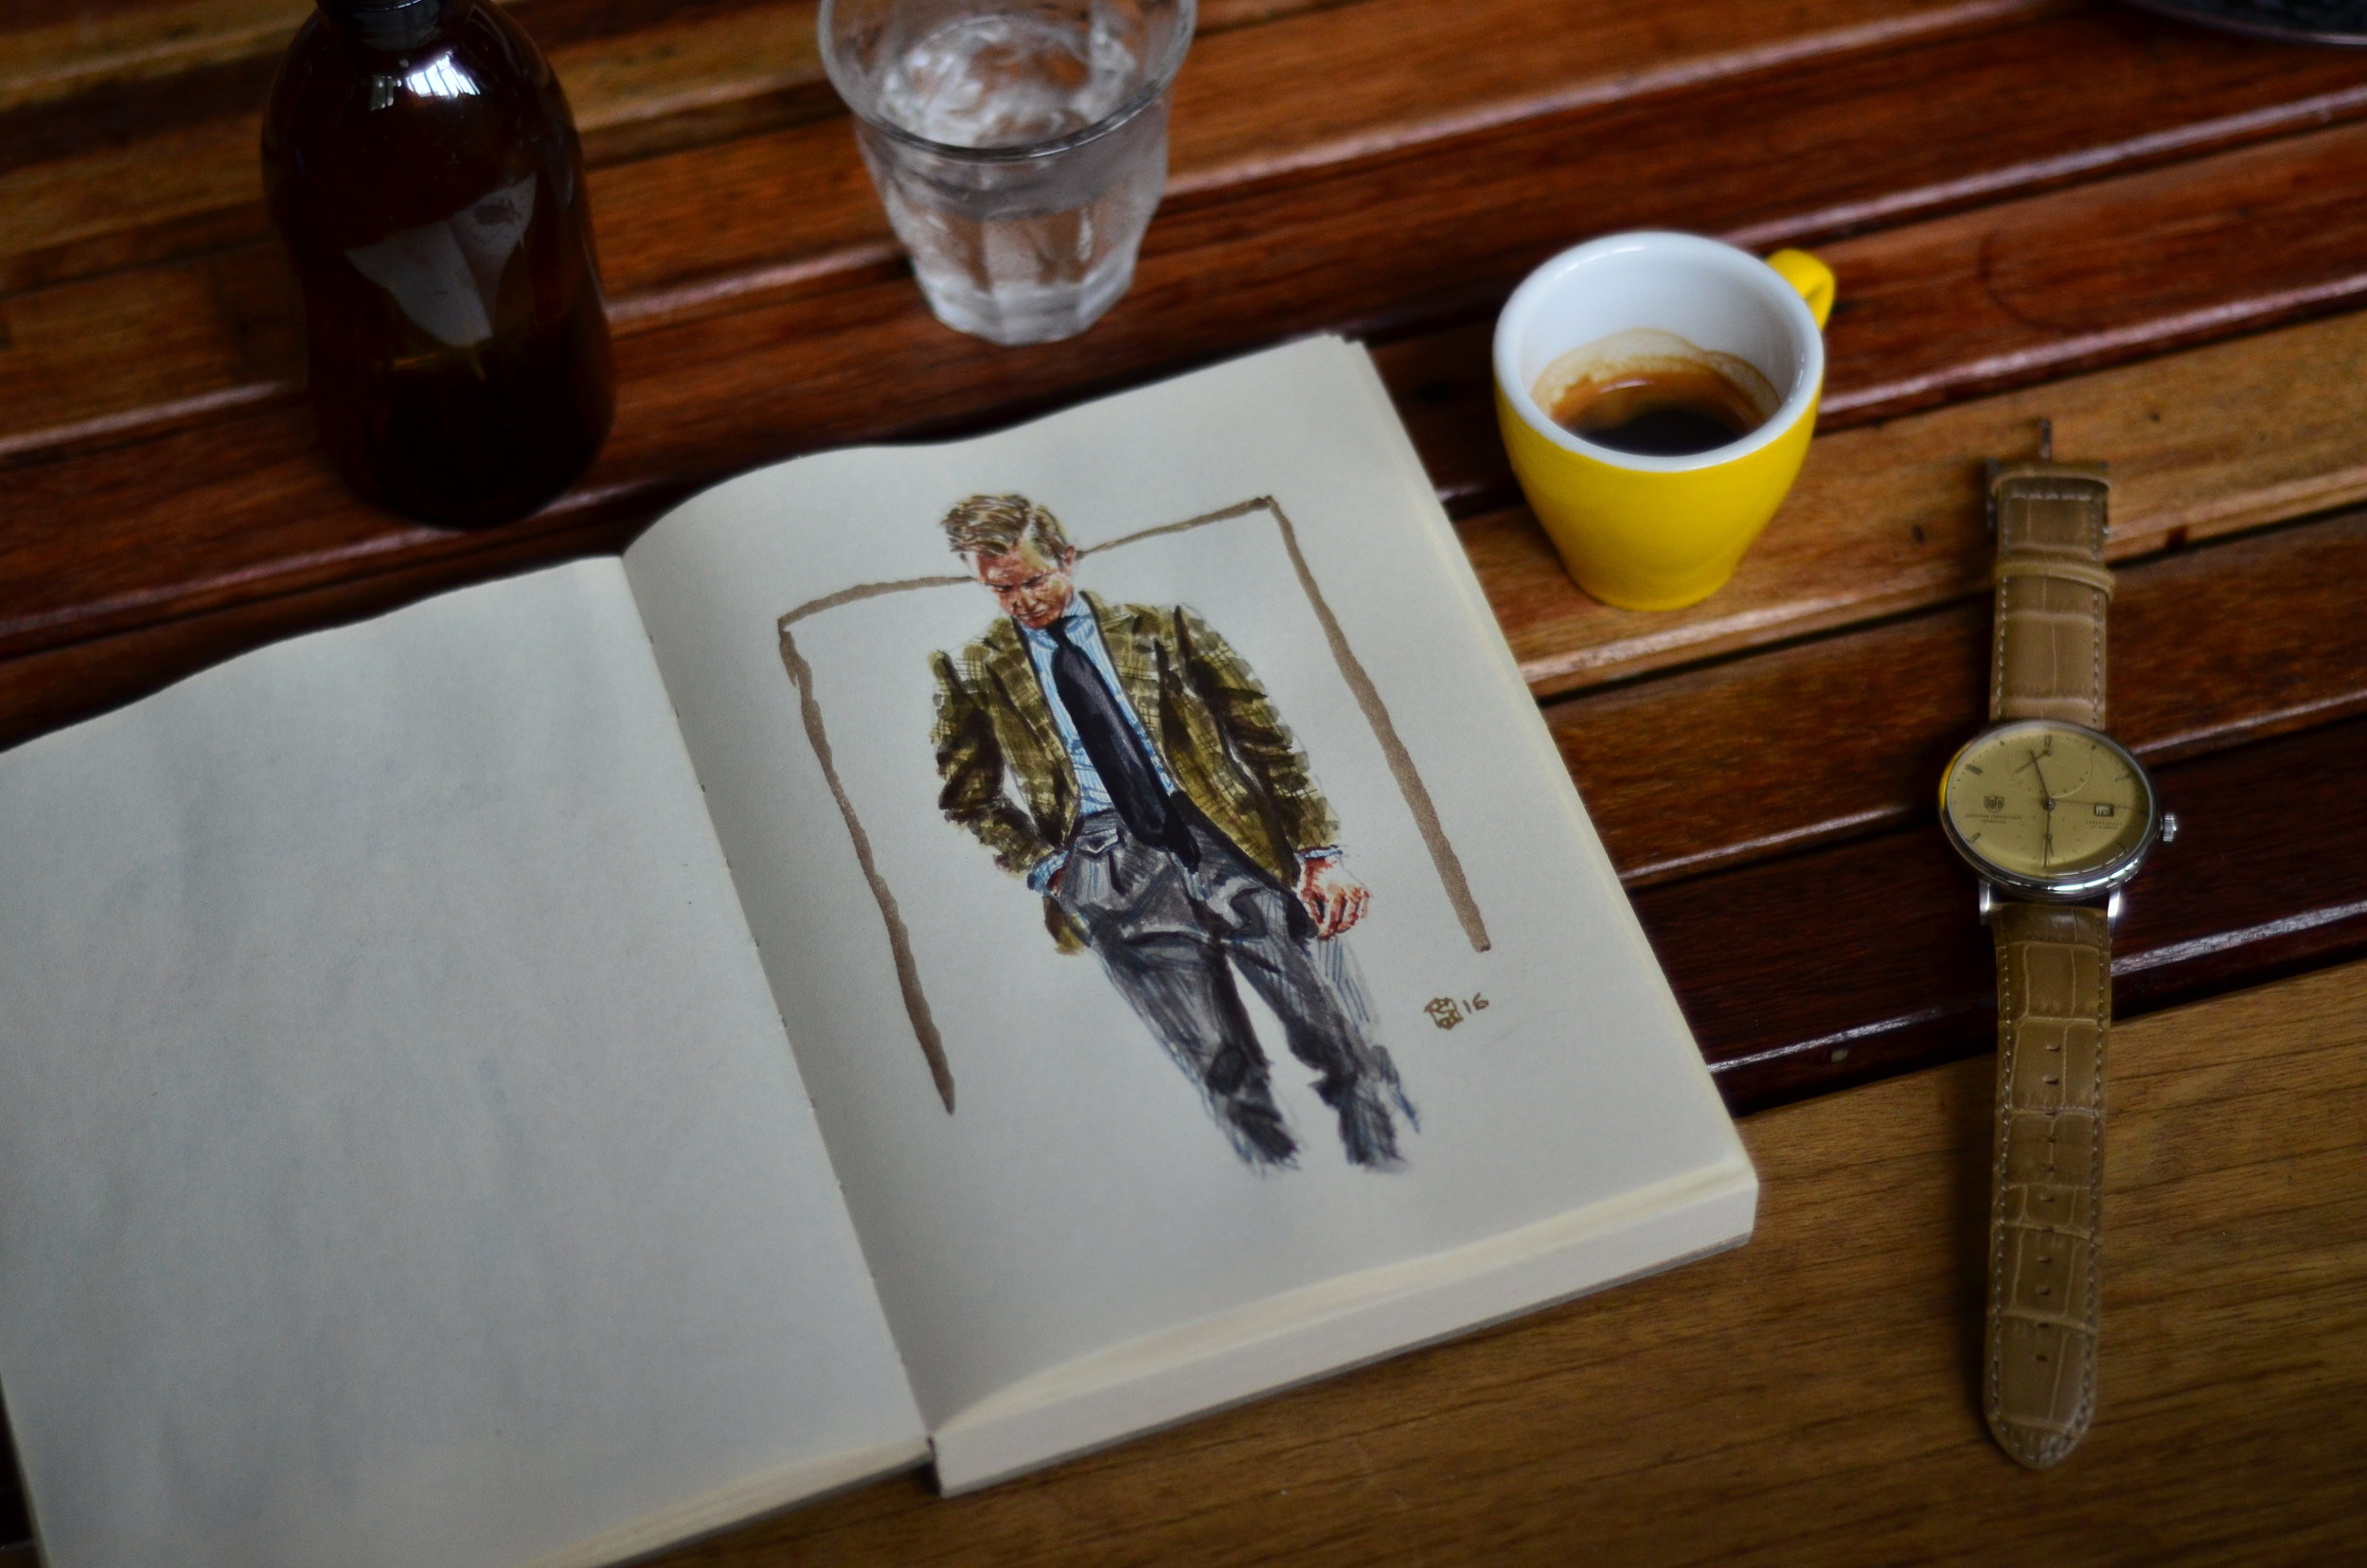 Open sketchbook sitting on table at a cafe with espresso